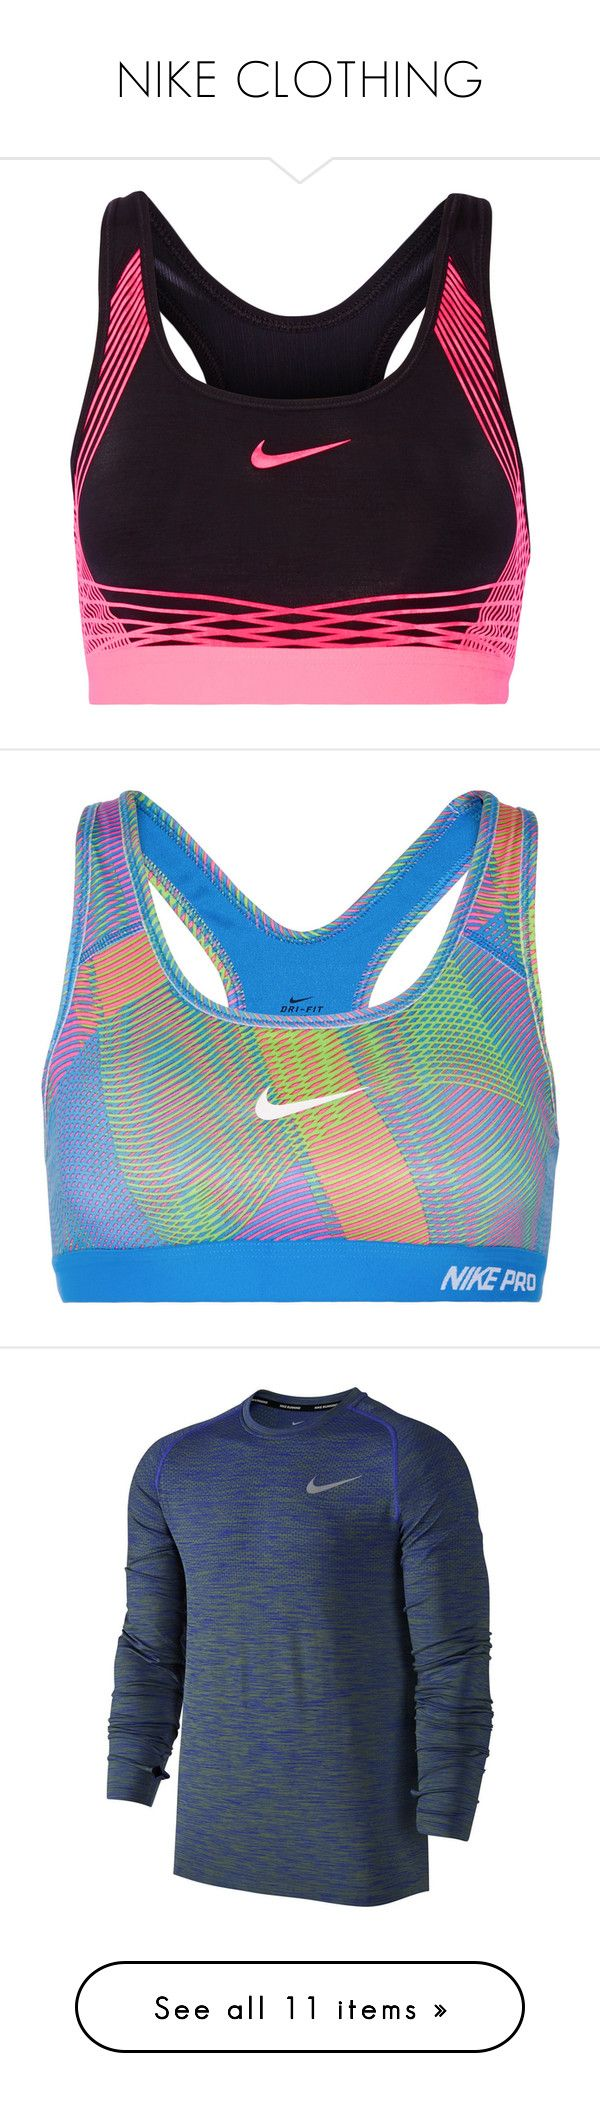 """NIKE CLOTHING"" by cottoncandy1223 ❤ liked on Polyvore featuring activewear, sports bras, nike, racer back sports bra, padded sports bra, nike sports bra, stretch jersey, ropa interior, sweats and blue"